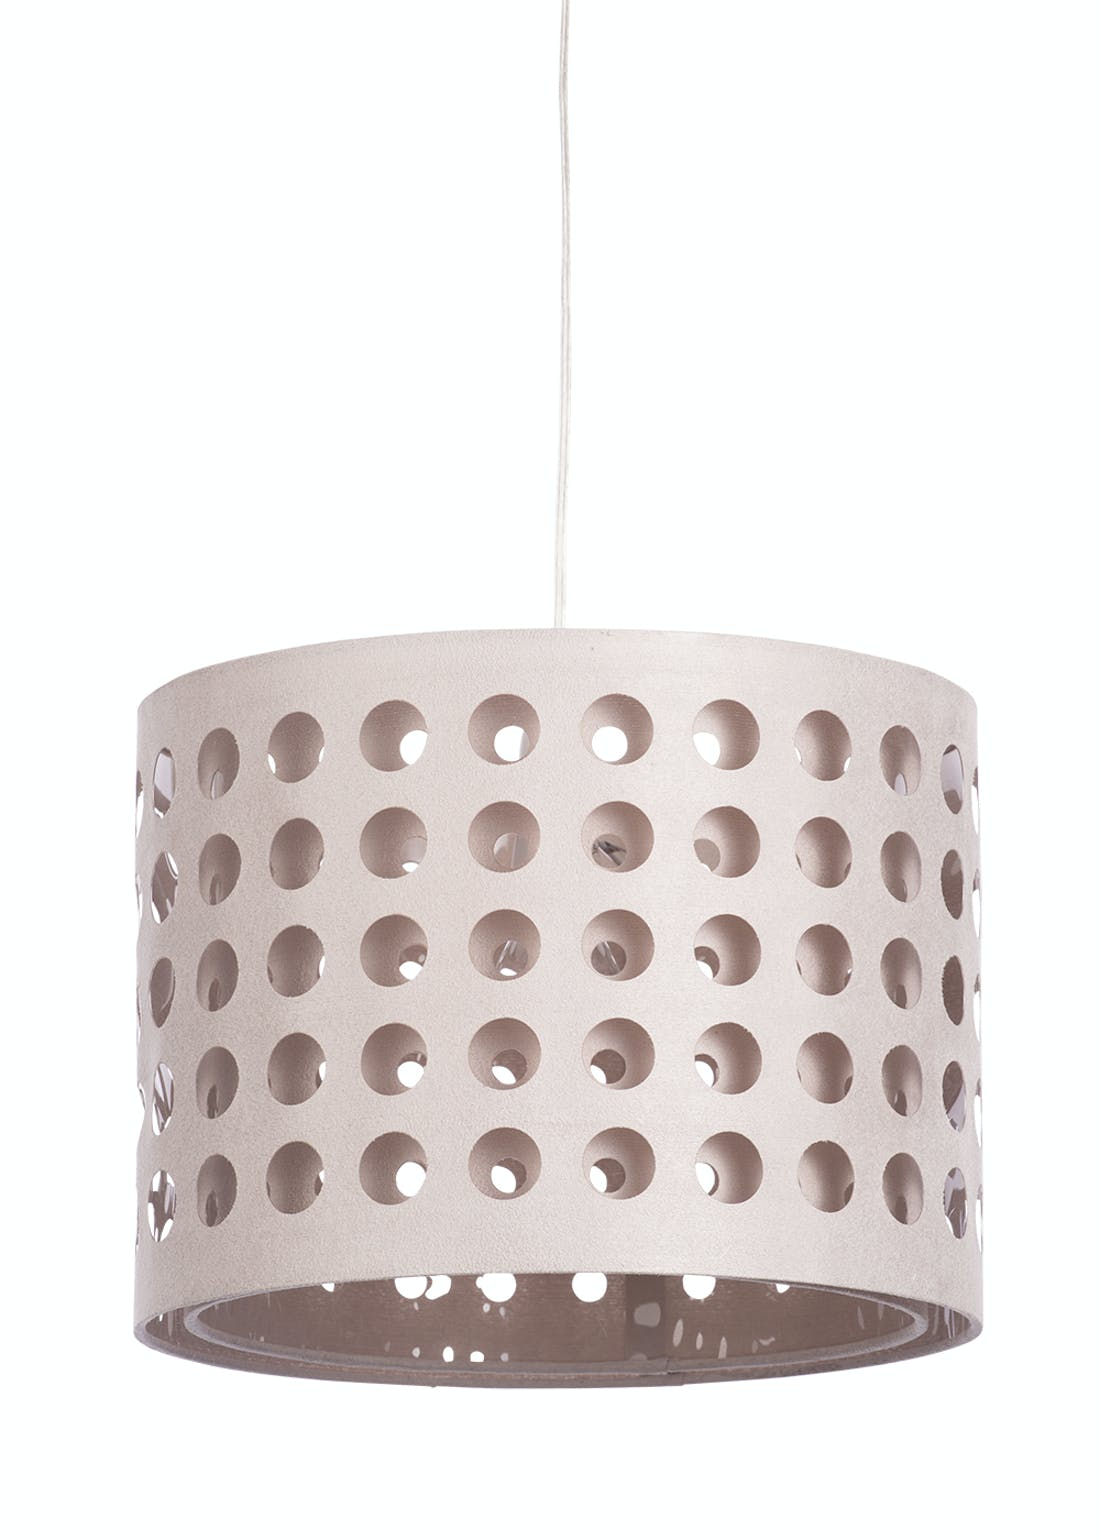 Dotty Drum Easy Fit Lamp Shade (W35cm x H25cm)